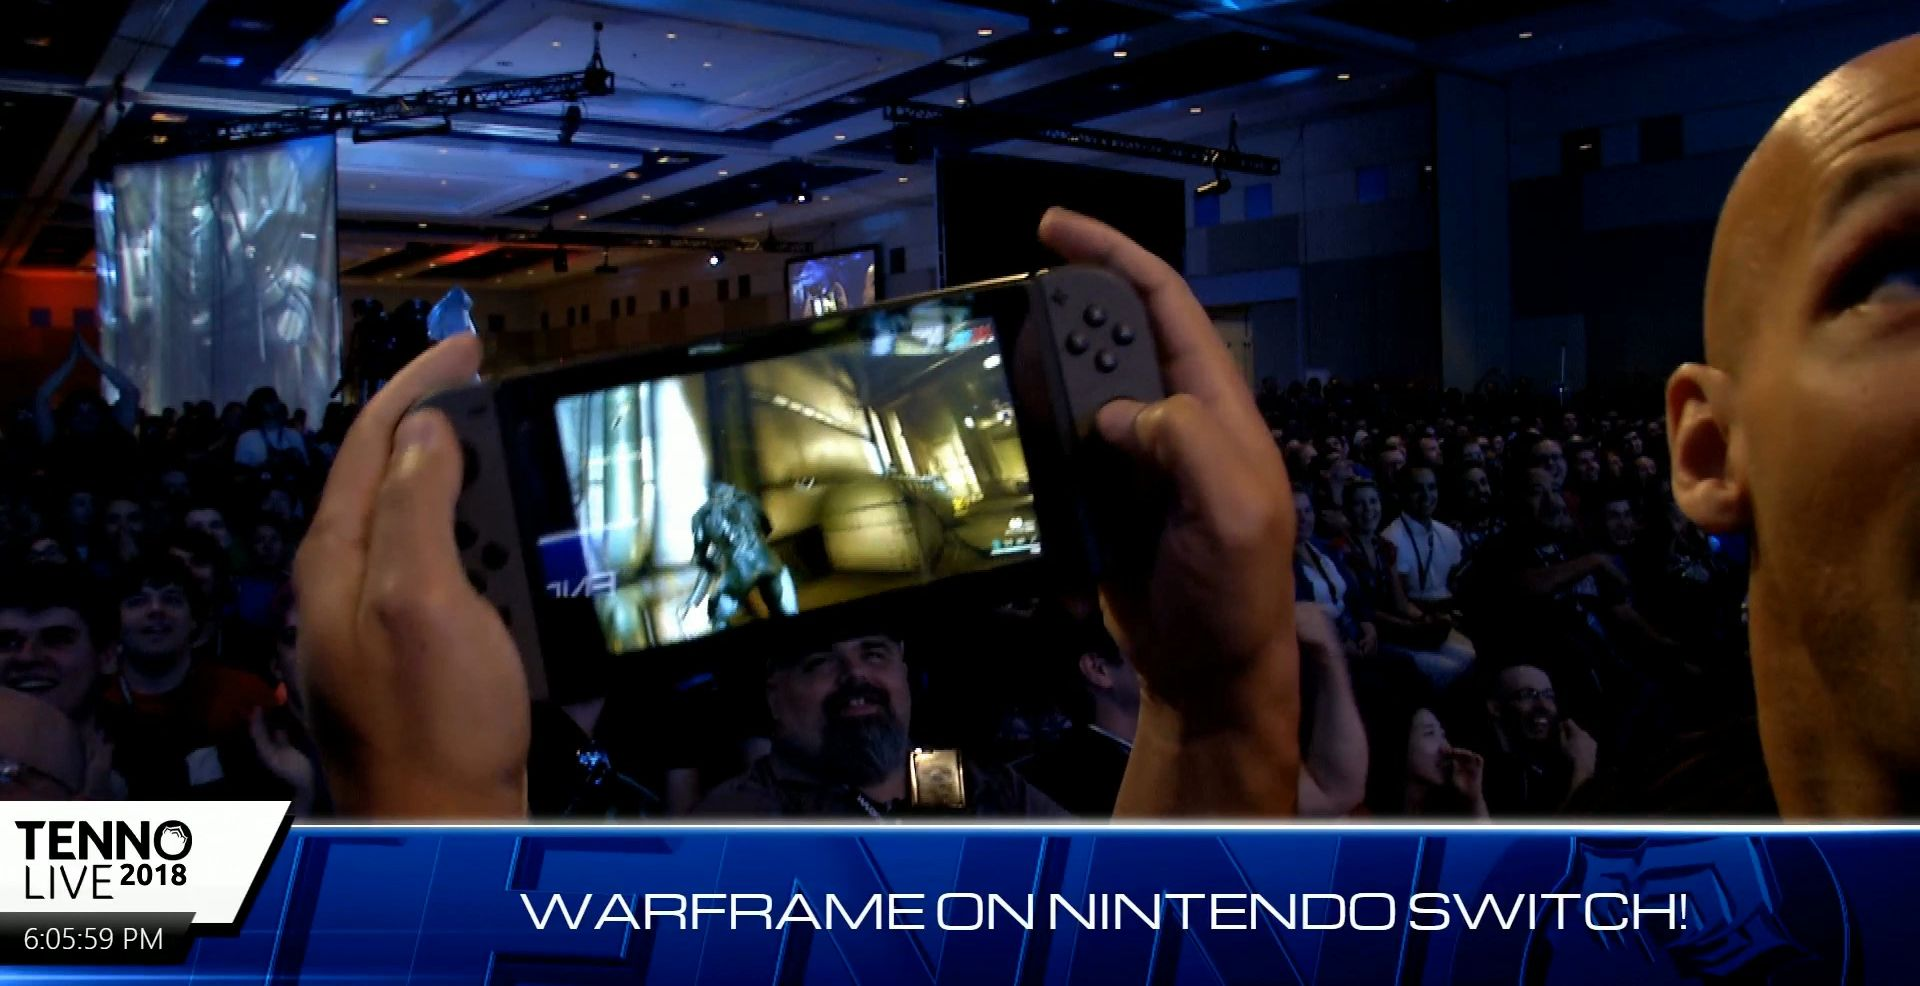 TennoCon 2018 Warframe Coming To Nintendo Switch With